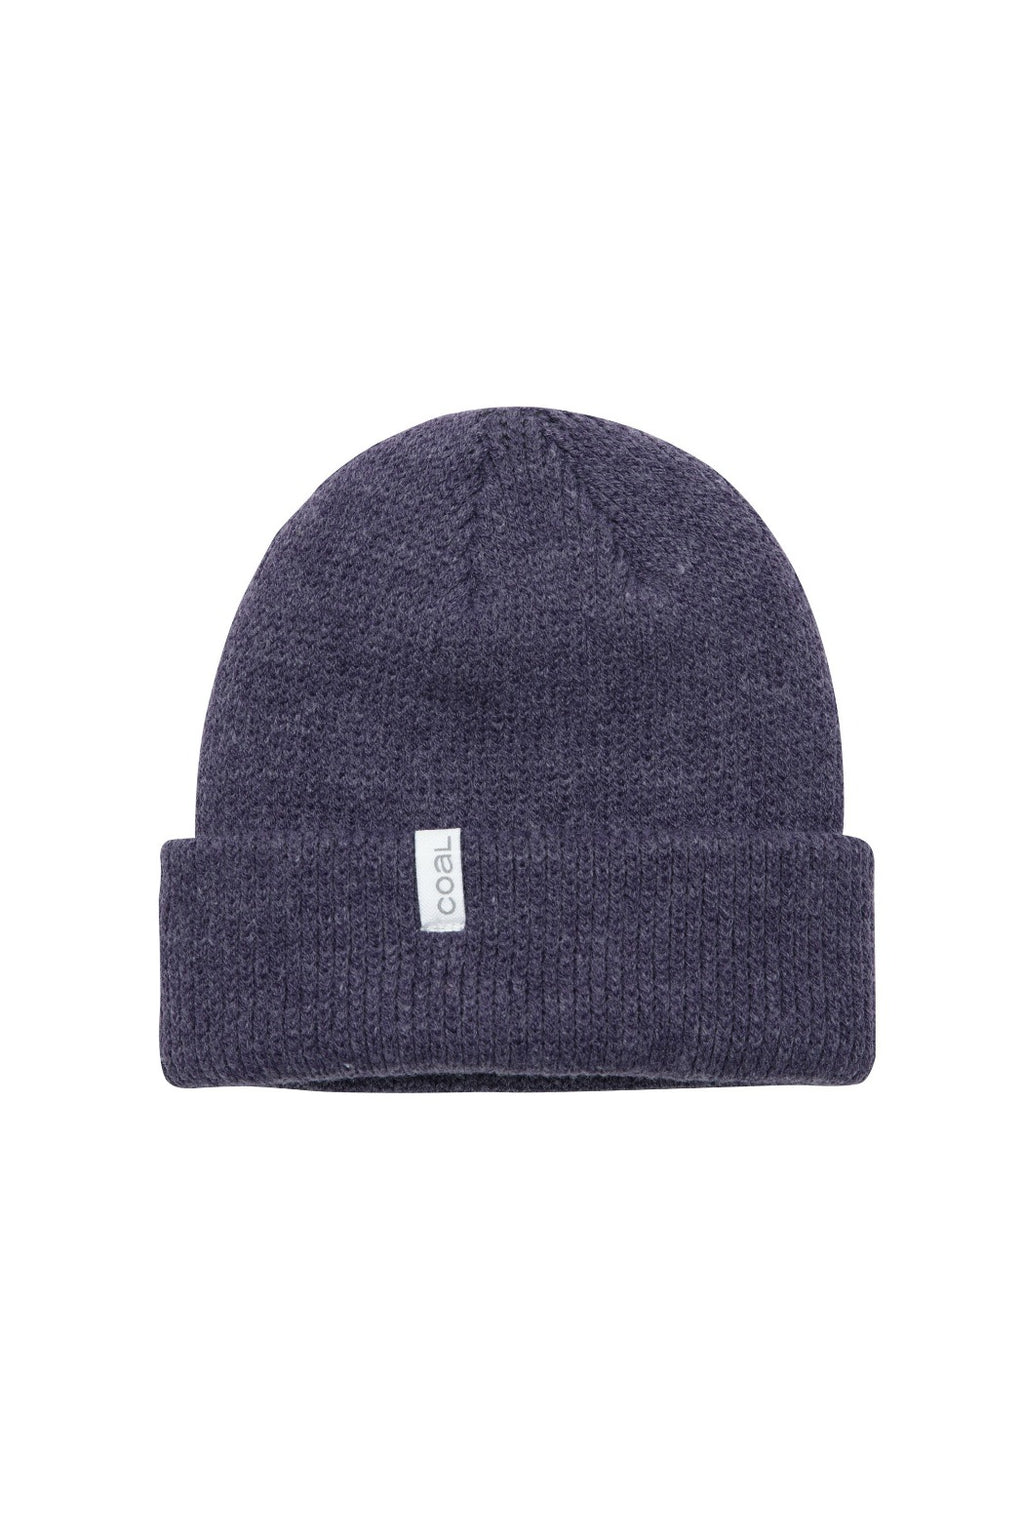 Coal Frena Solid Beanie - Heather Purple